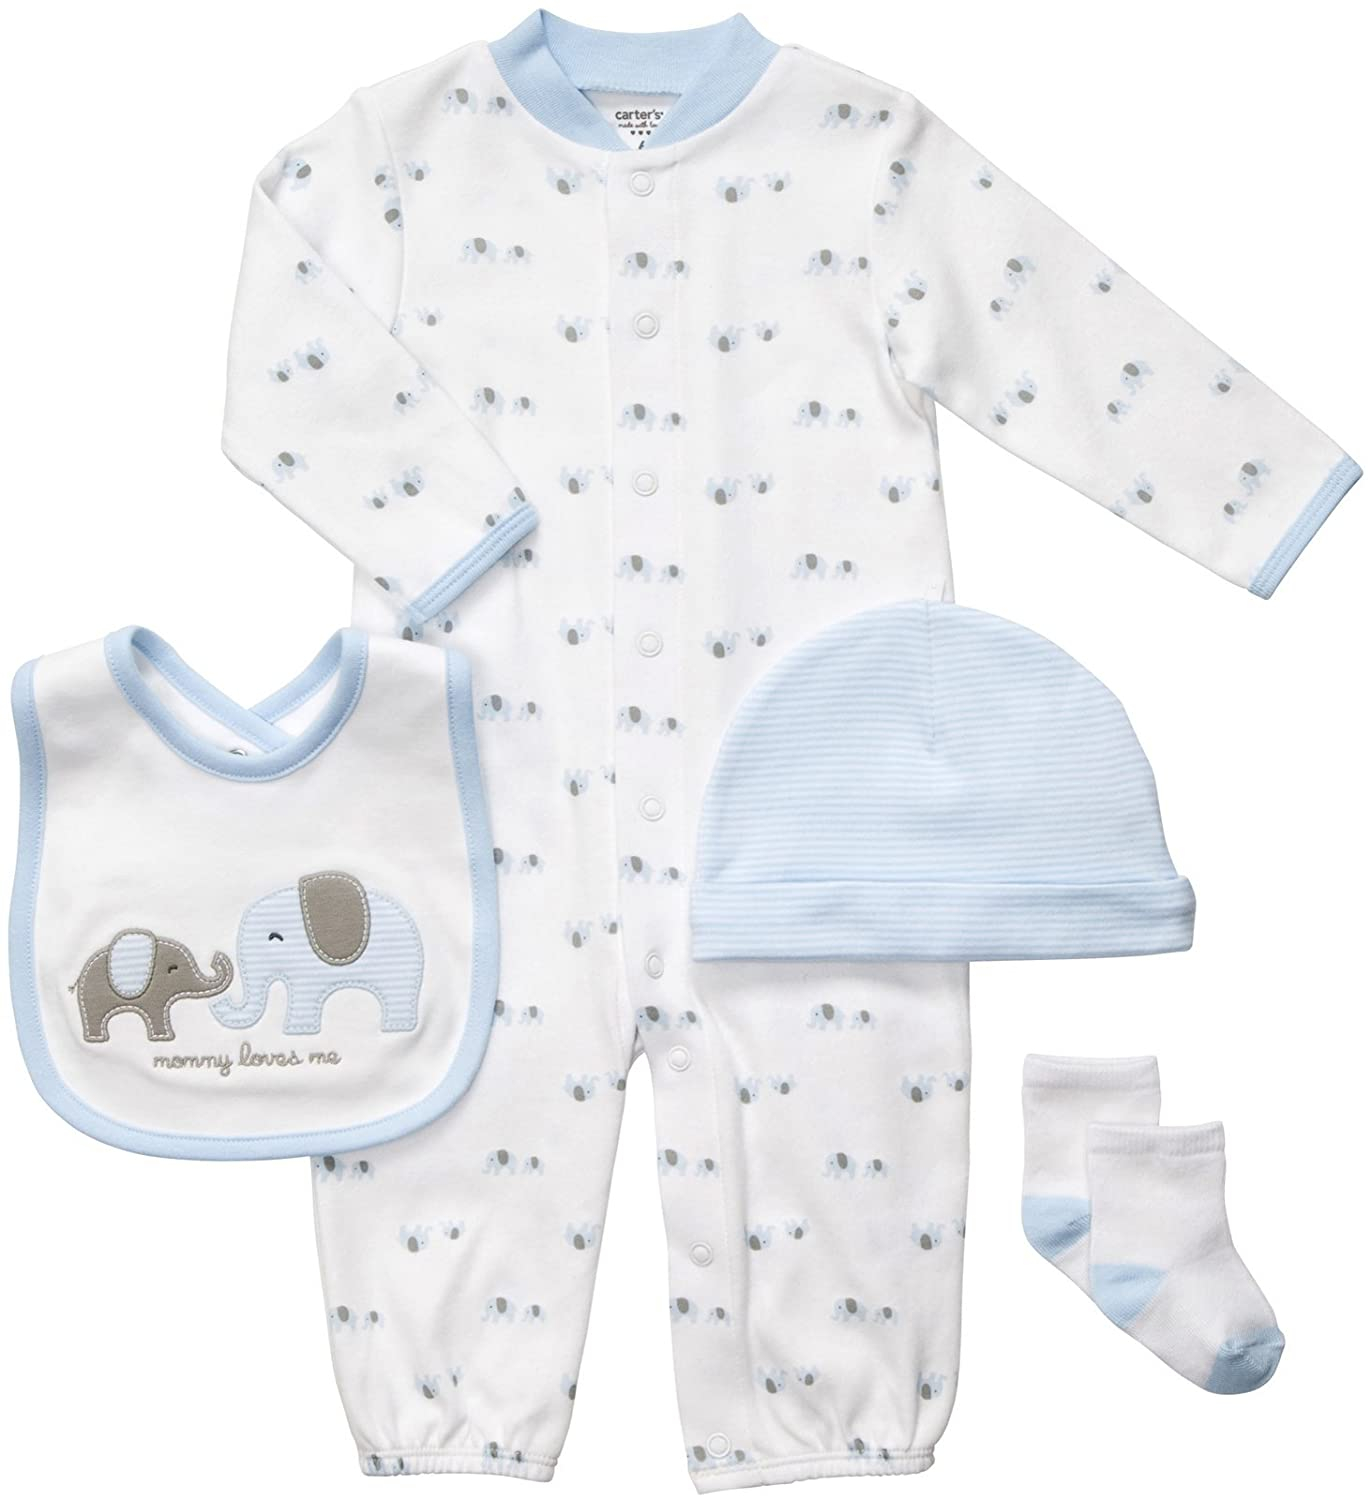 Unique Pictures Of Baby Boy Elephant Clothes - Cutest Baby ...